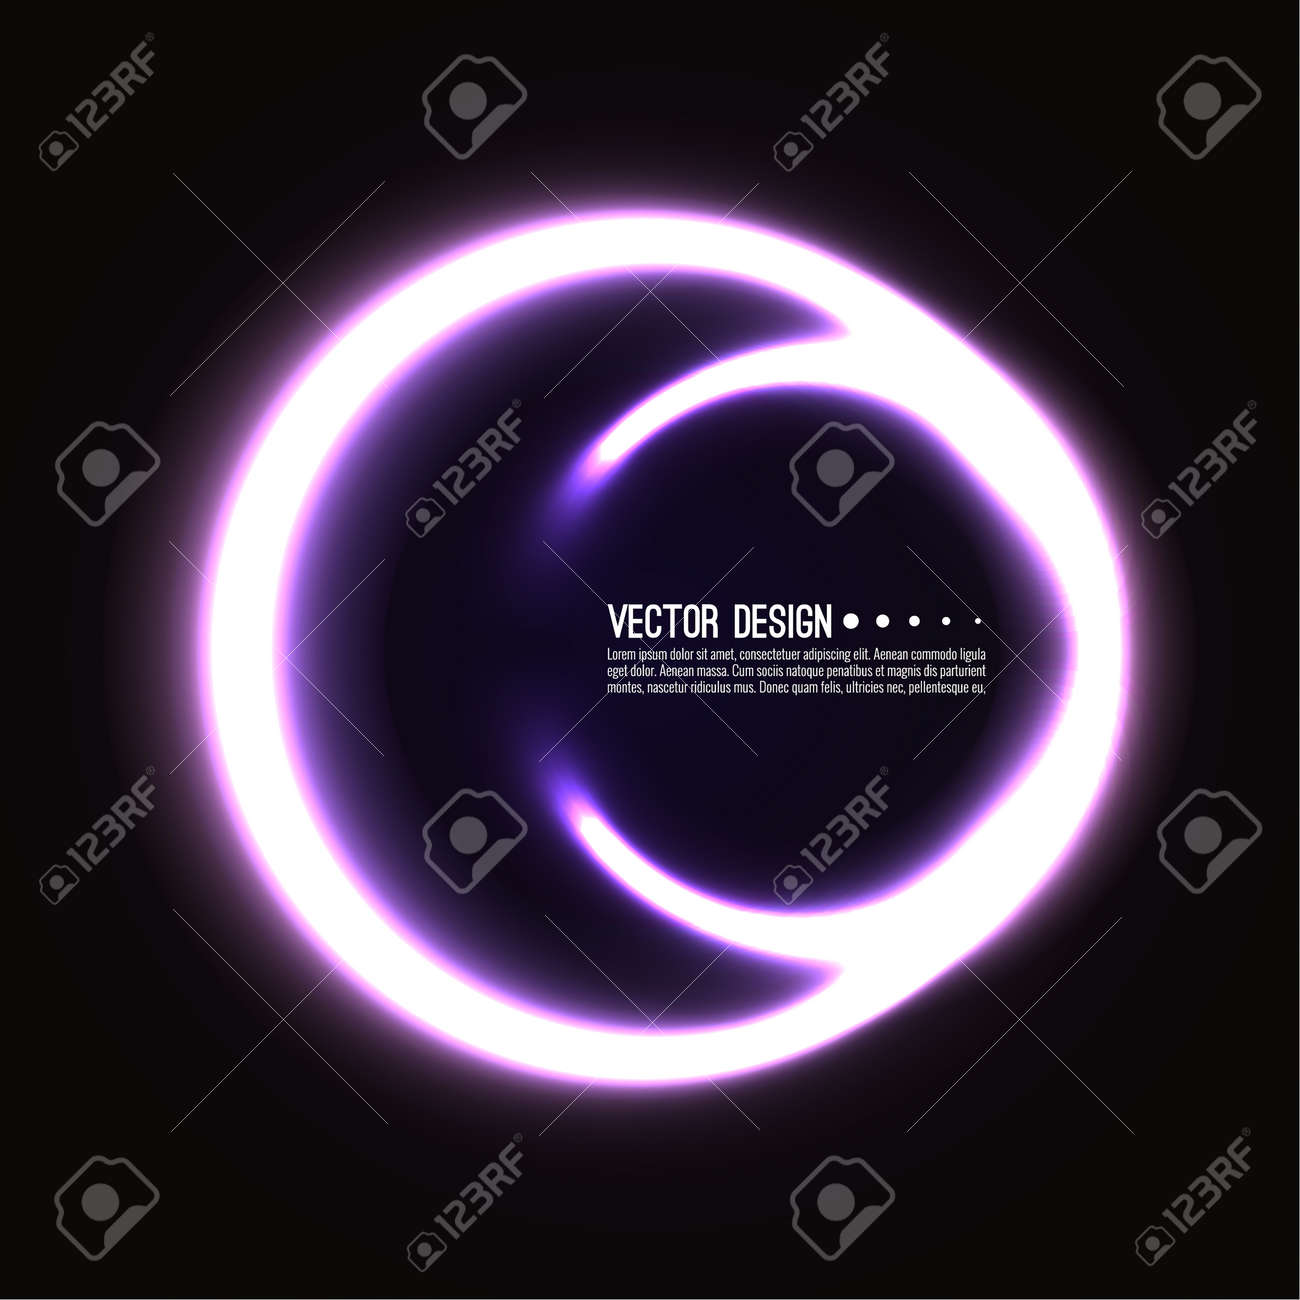 Abstract vector background - 172255117